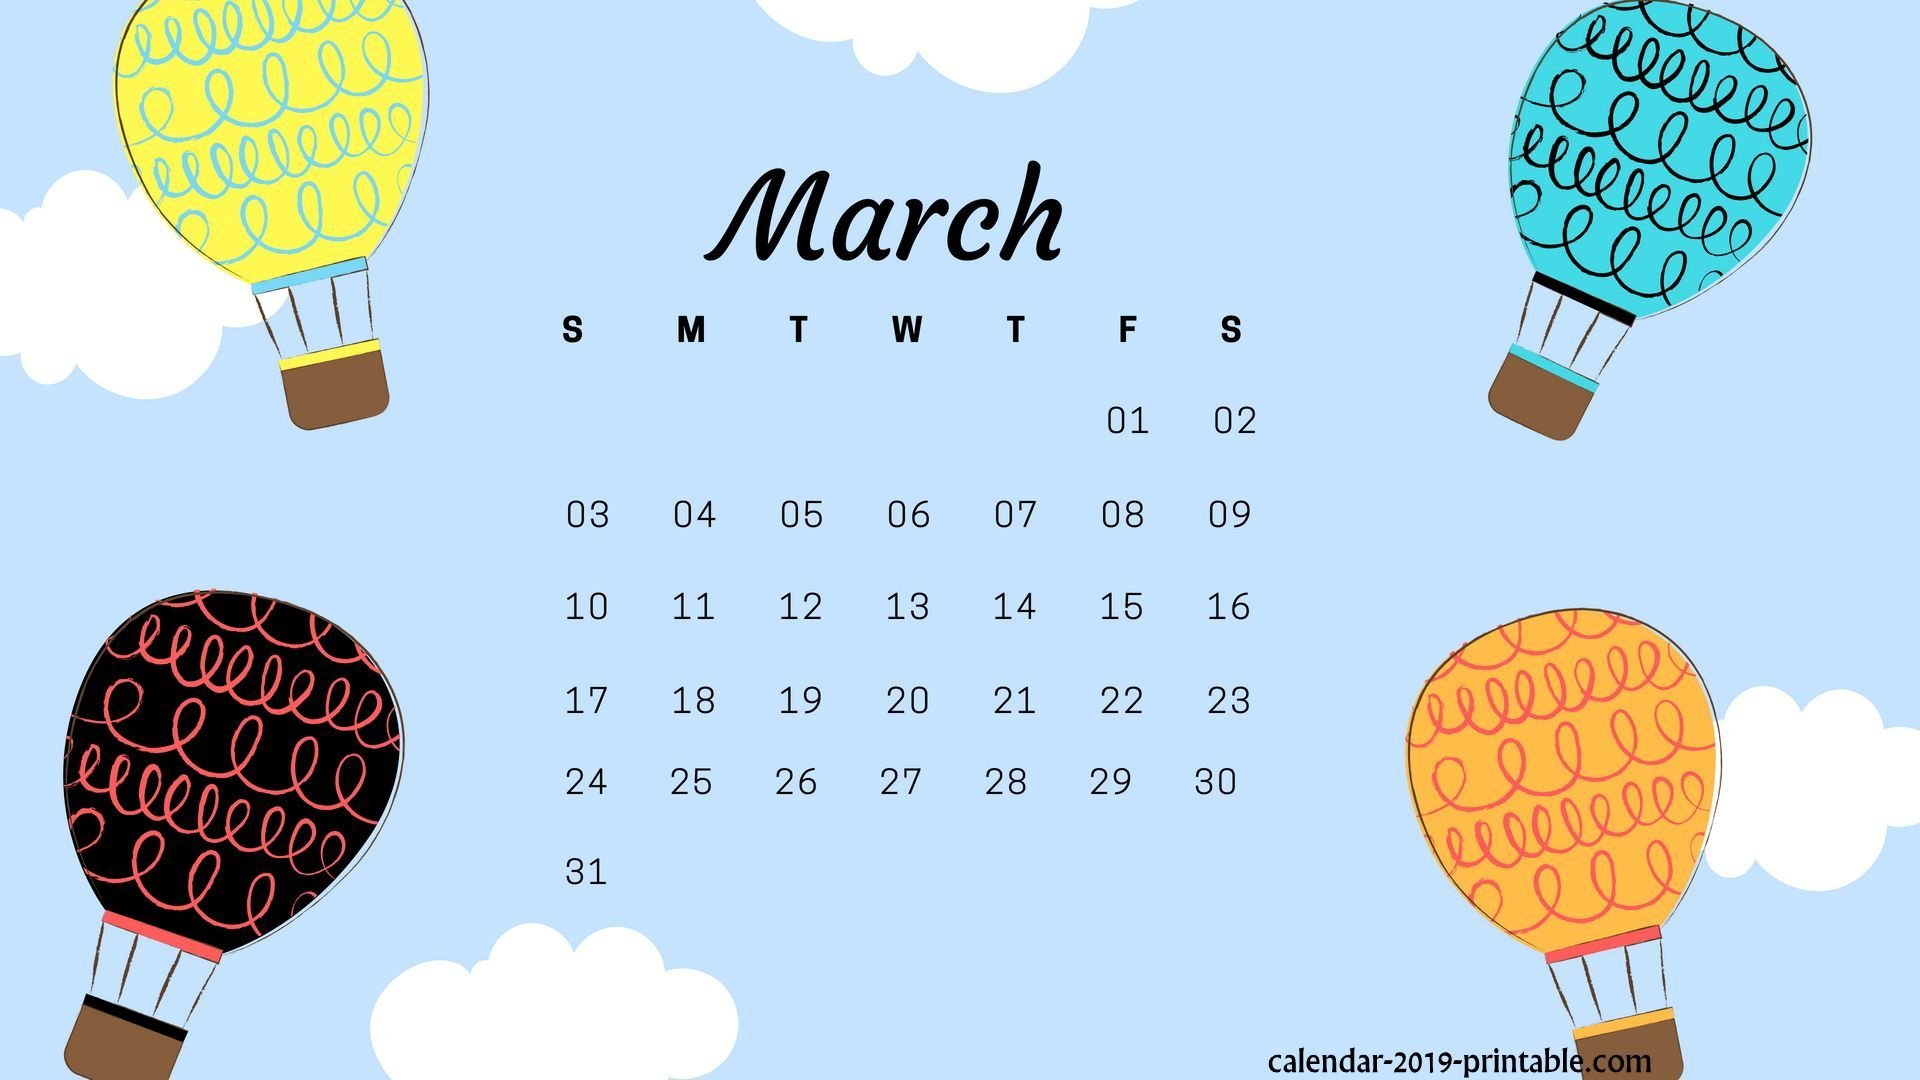 March 2019 Calendar Wallpapers - Wallpaper Cave Calendar 2019 Wallpaper